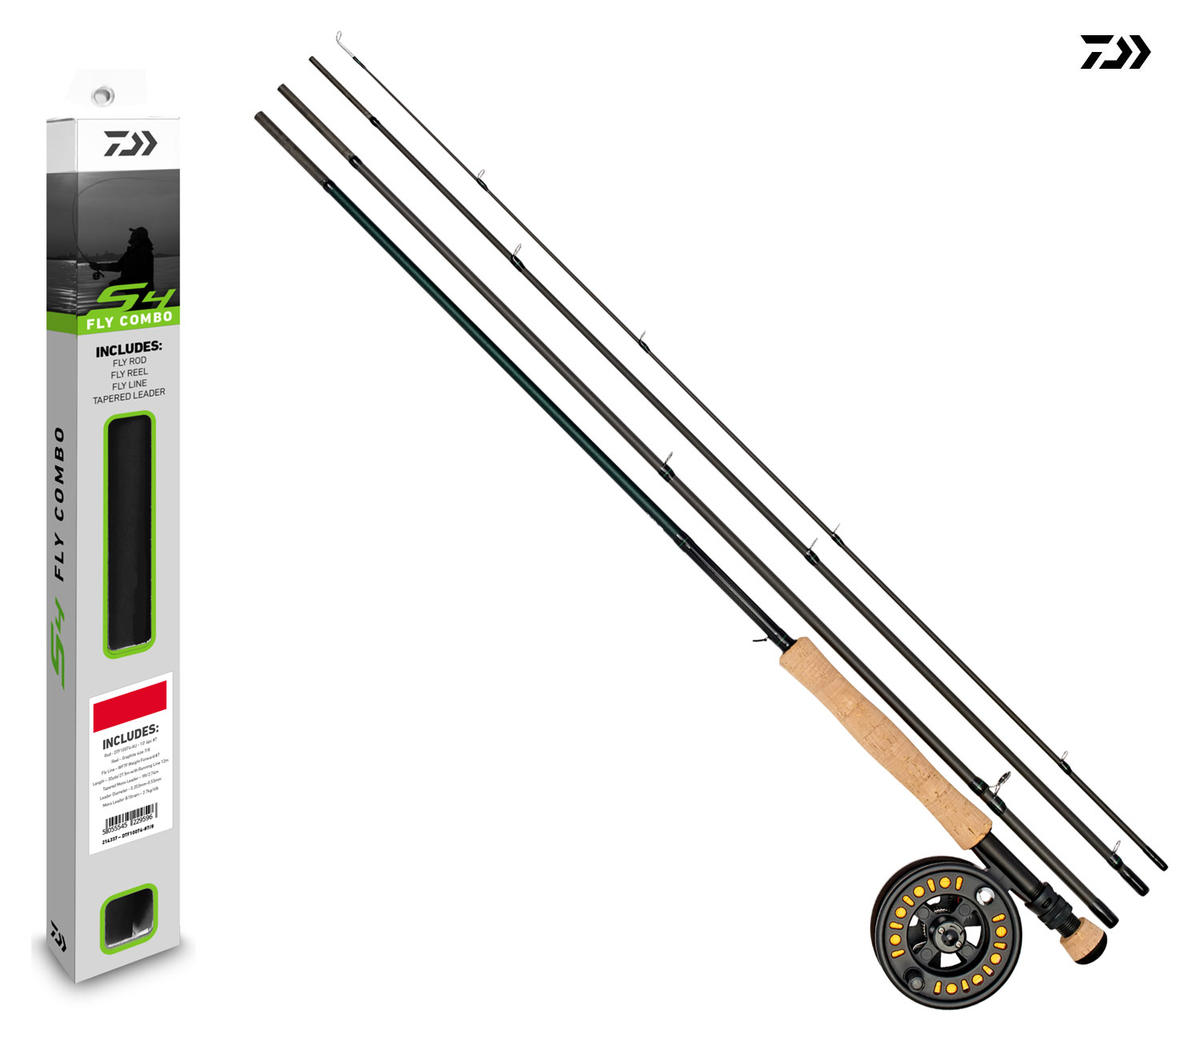 New Daiwa S4 Fly Fishing Combo - Rod/ Reel/ Tube - Loaded with Line - All Models